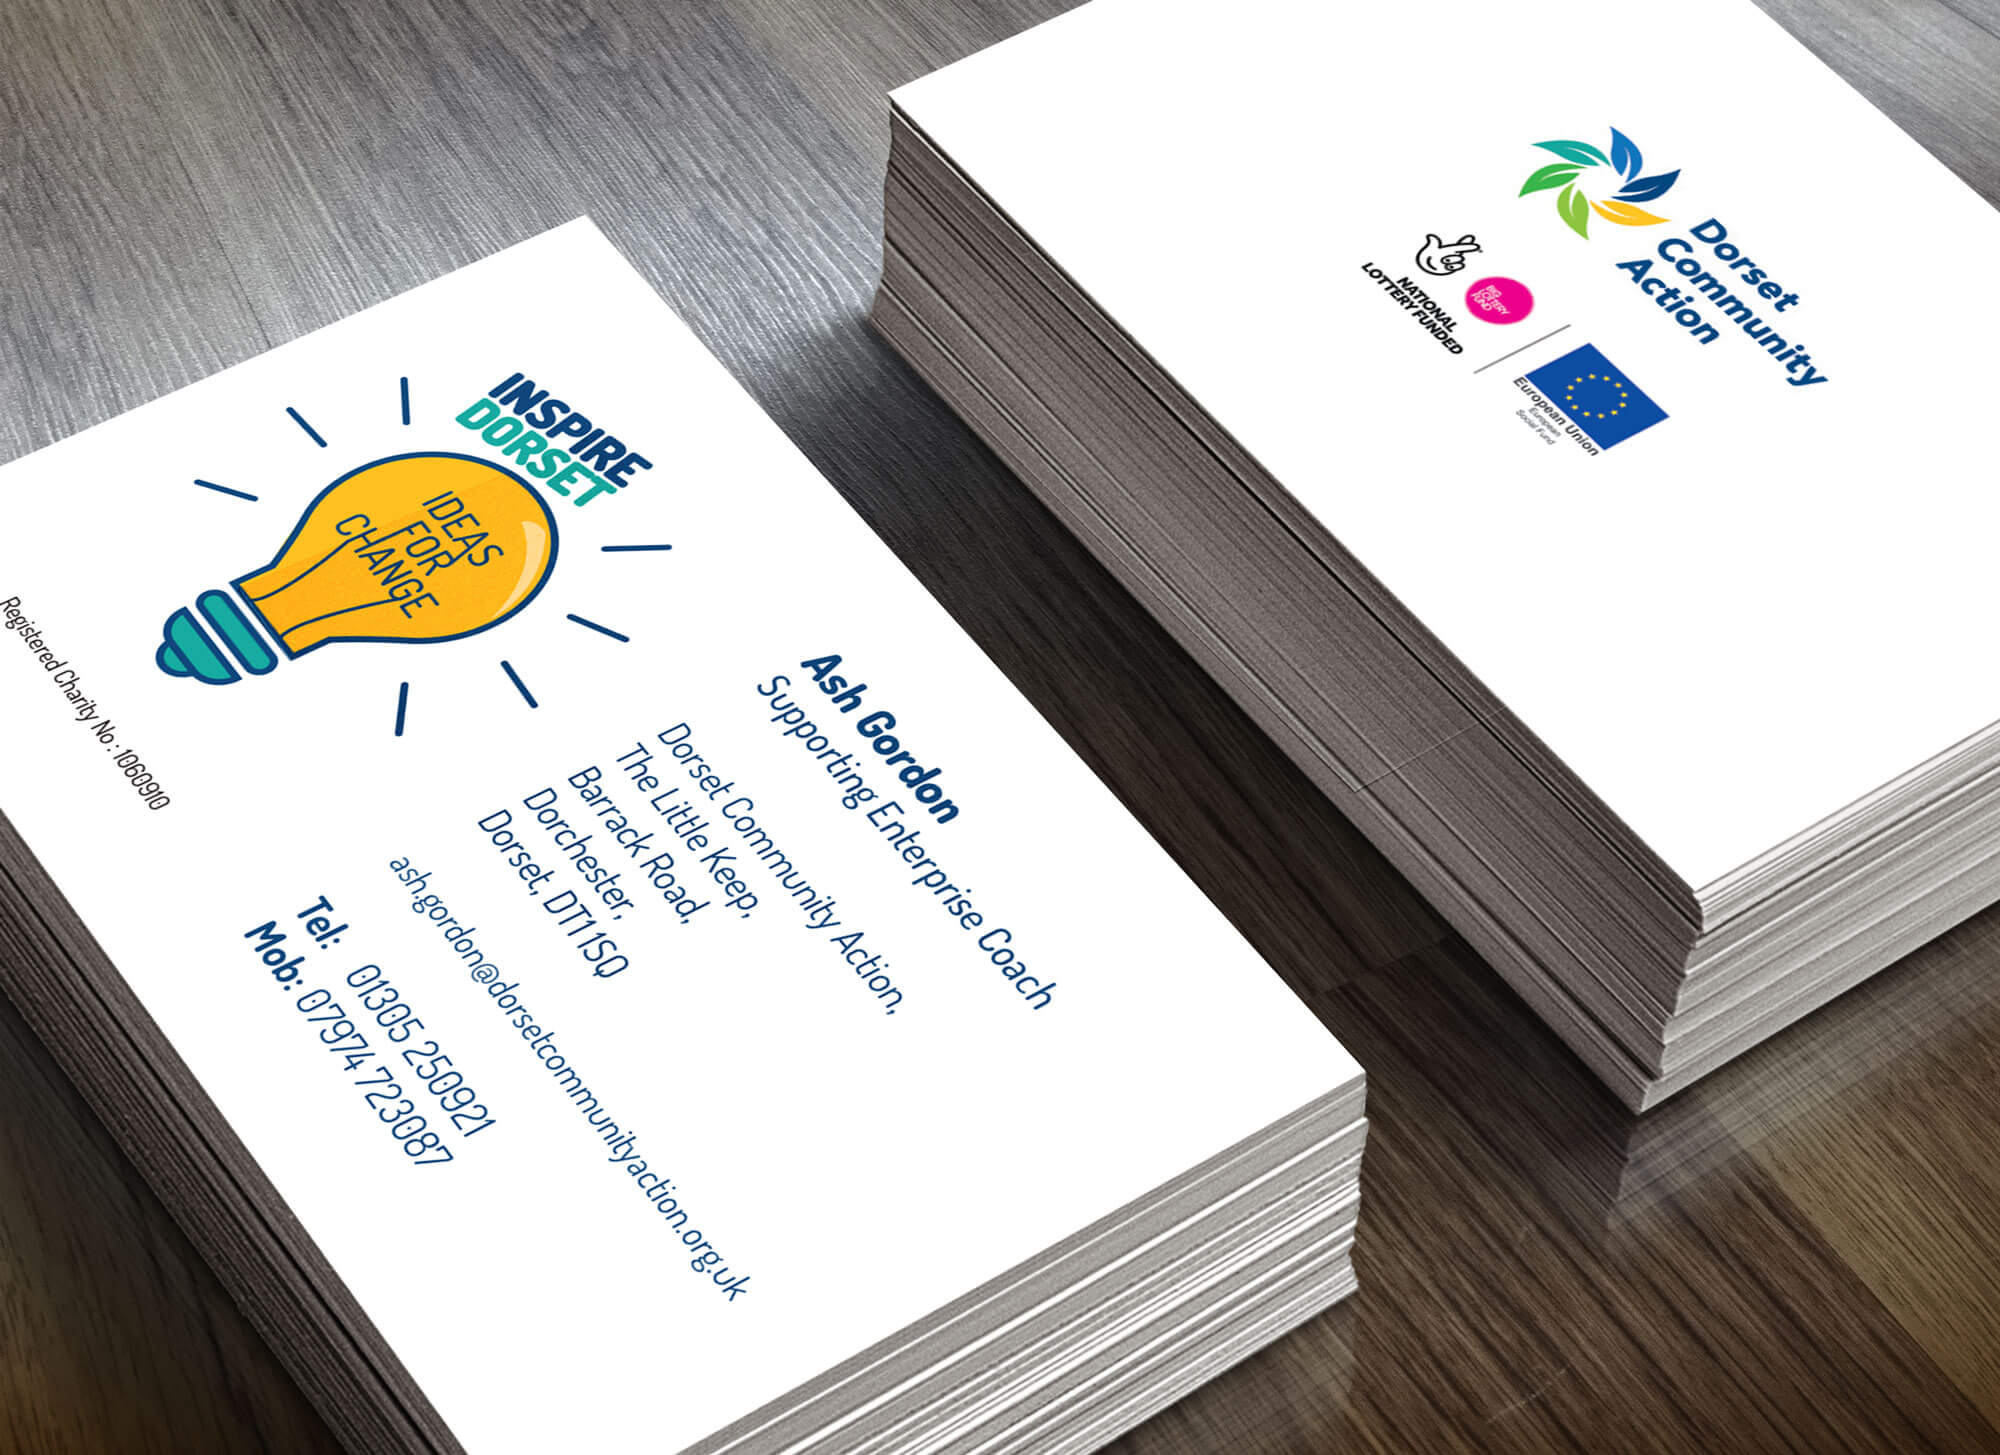 Business cards printing hurstville image collections card design modern kwik kopy business cards illustration business card ideas business cards printing hurstville images card design reheart Images